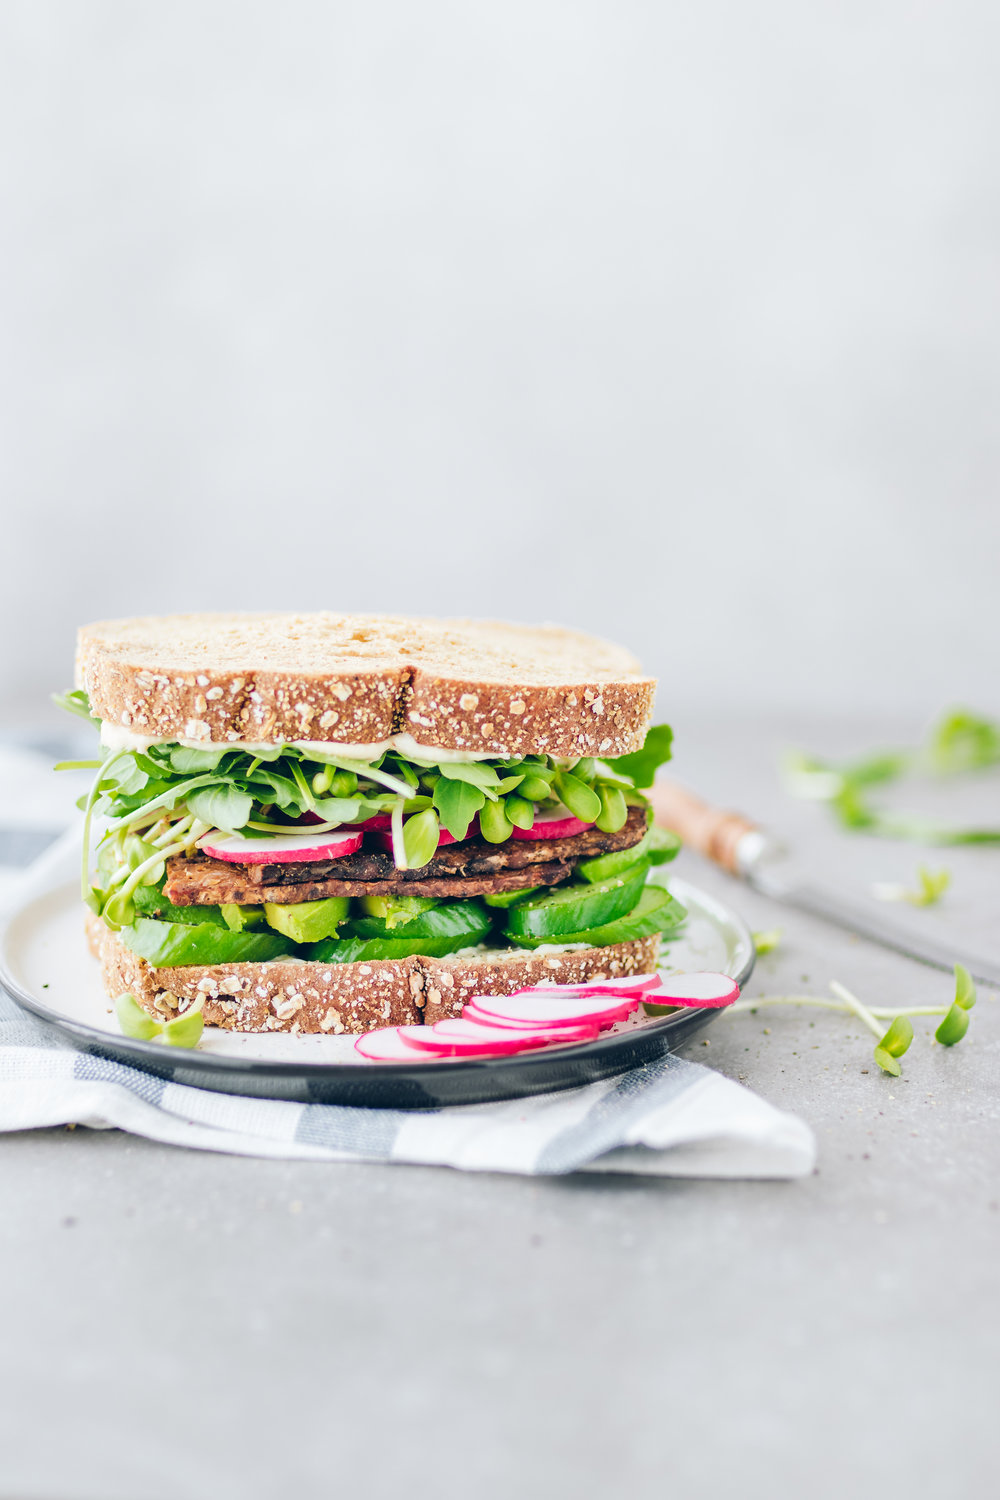 vegan-sandwich-greens-tempeh-bacon-sprouts-spring-simple-mills-radishes-fontaine-sante-hummus